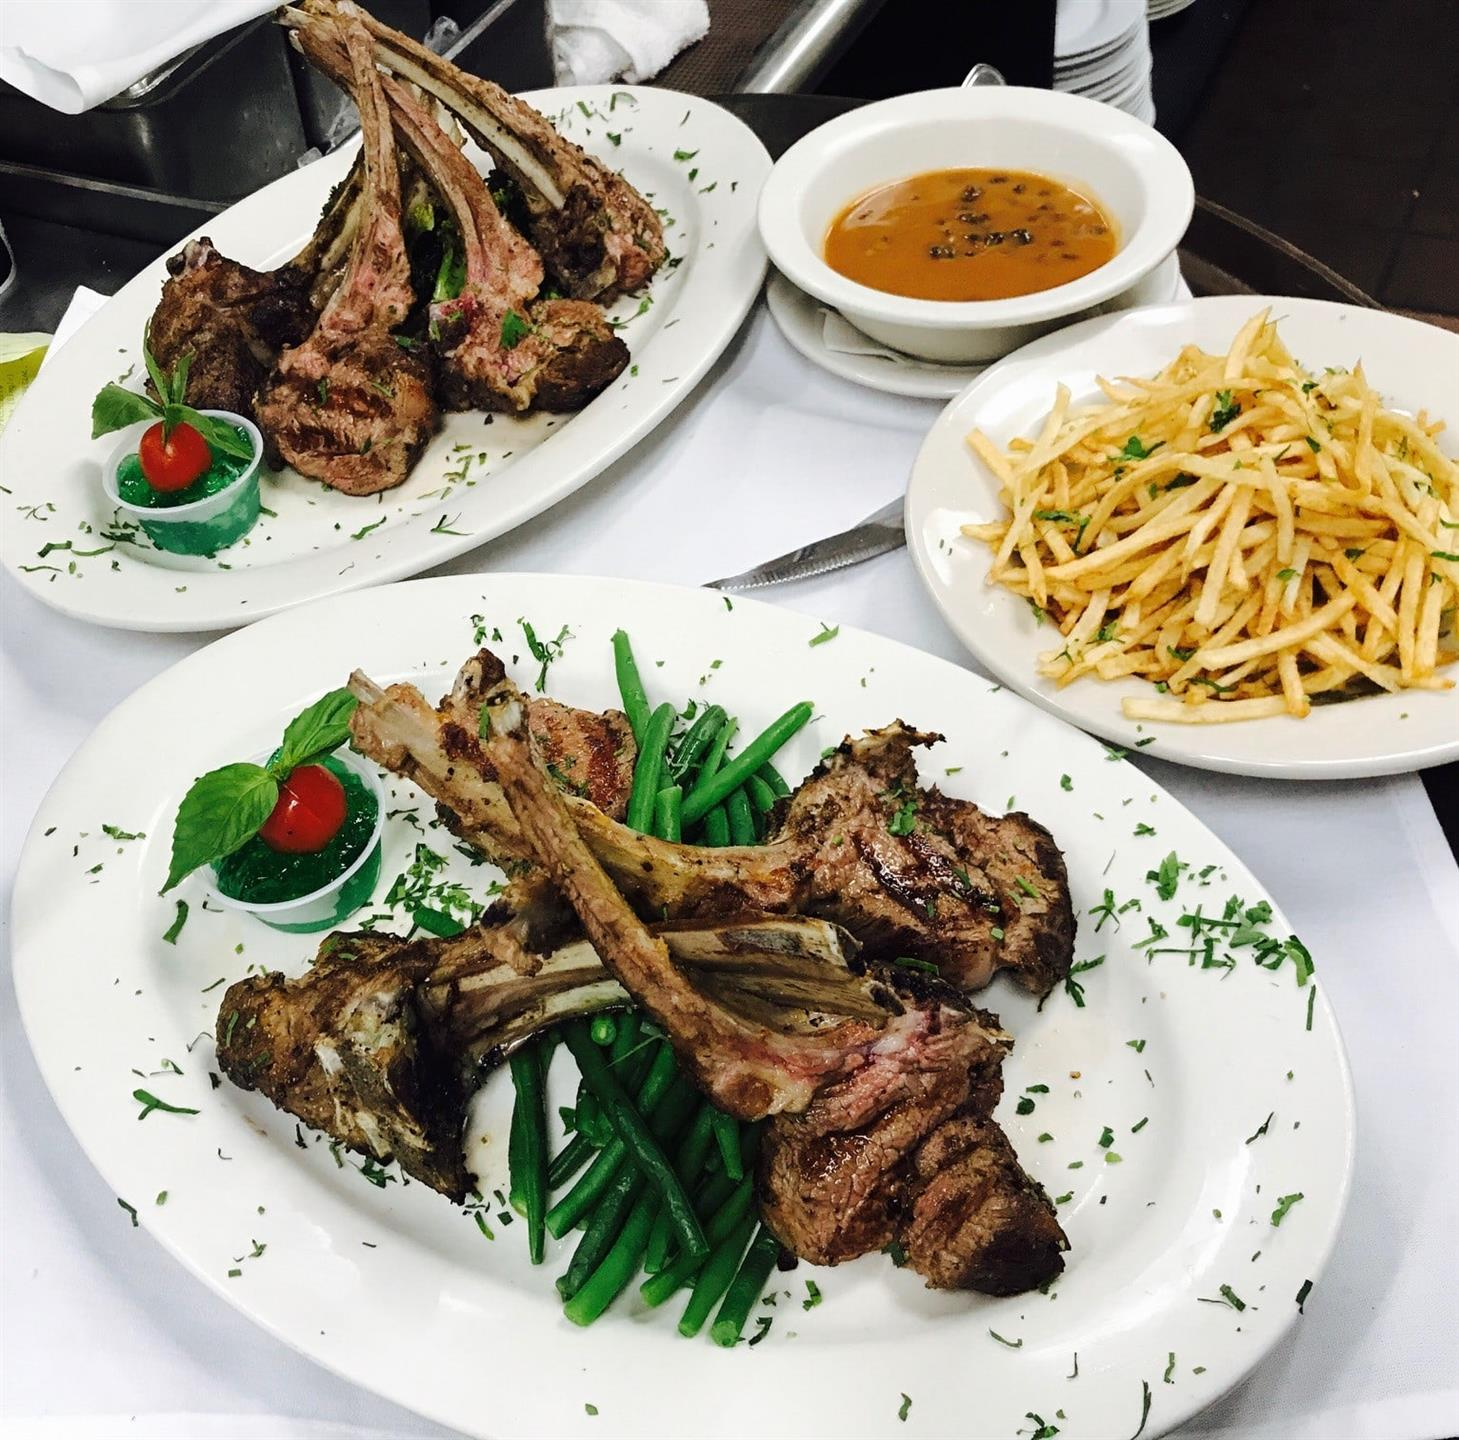 Grilled Lamb Shanks over a bed of green beans topped with sauce and a plate of French Fries